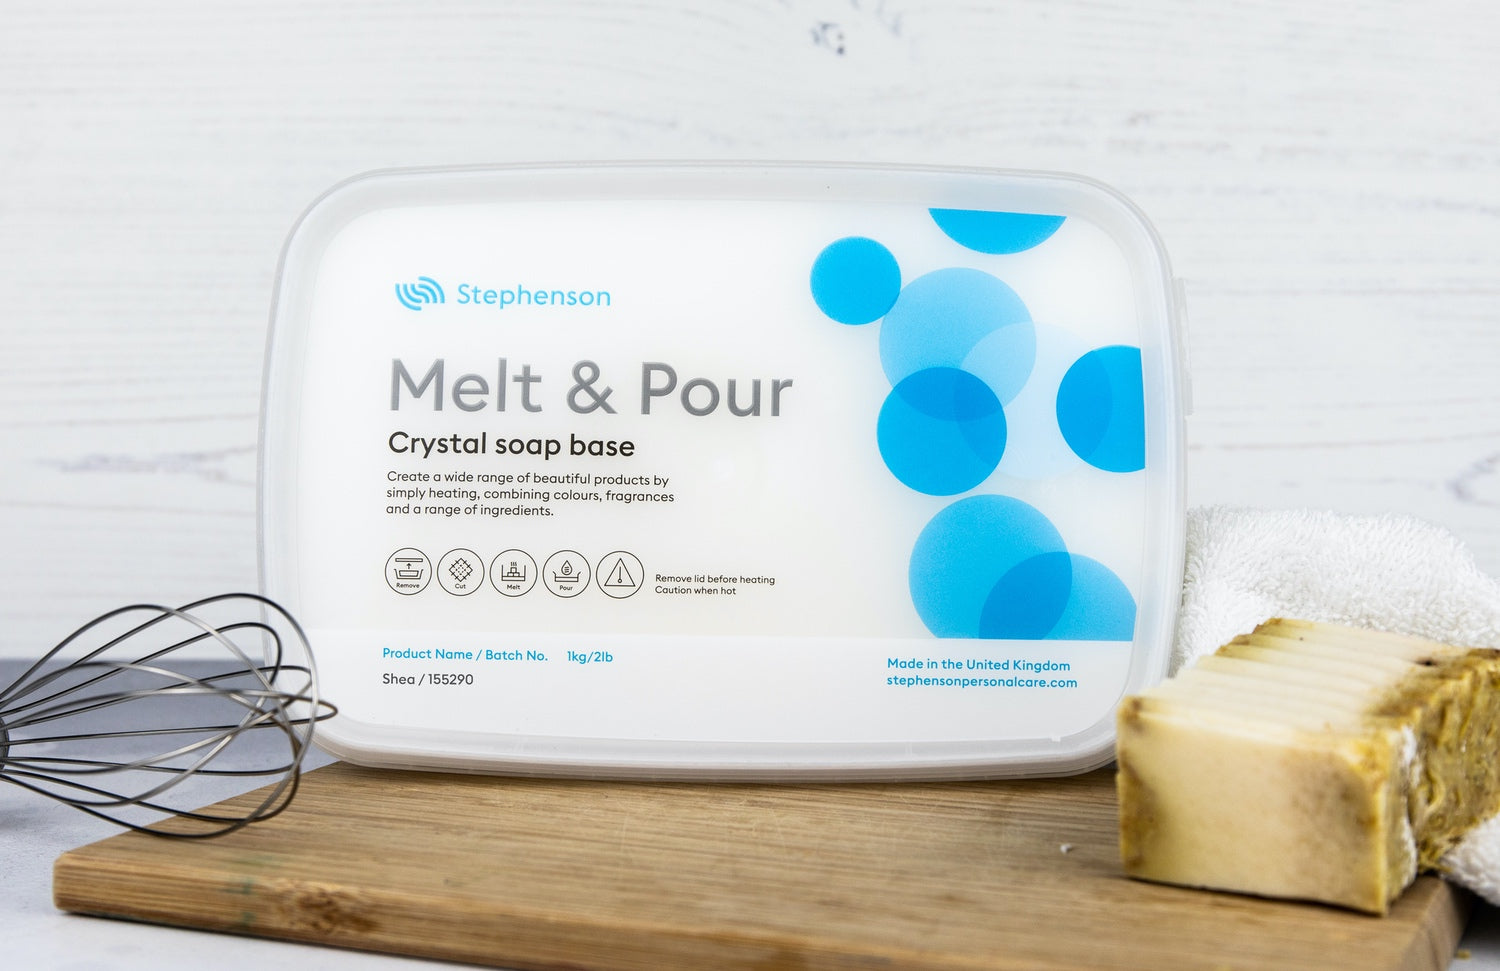 Melt & Pour Crystal Shea Butter